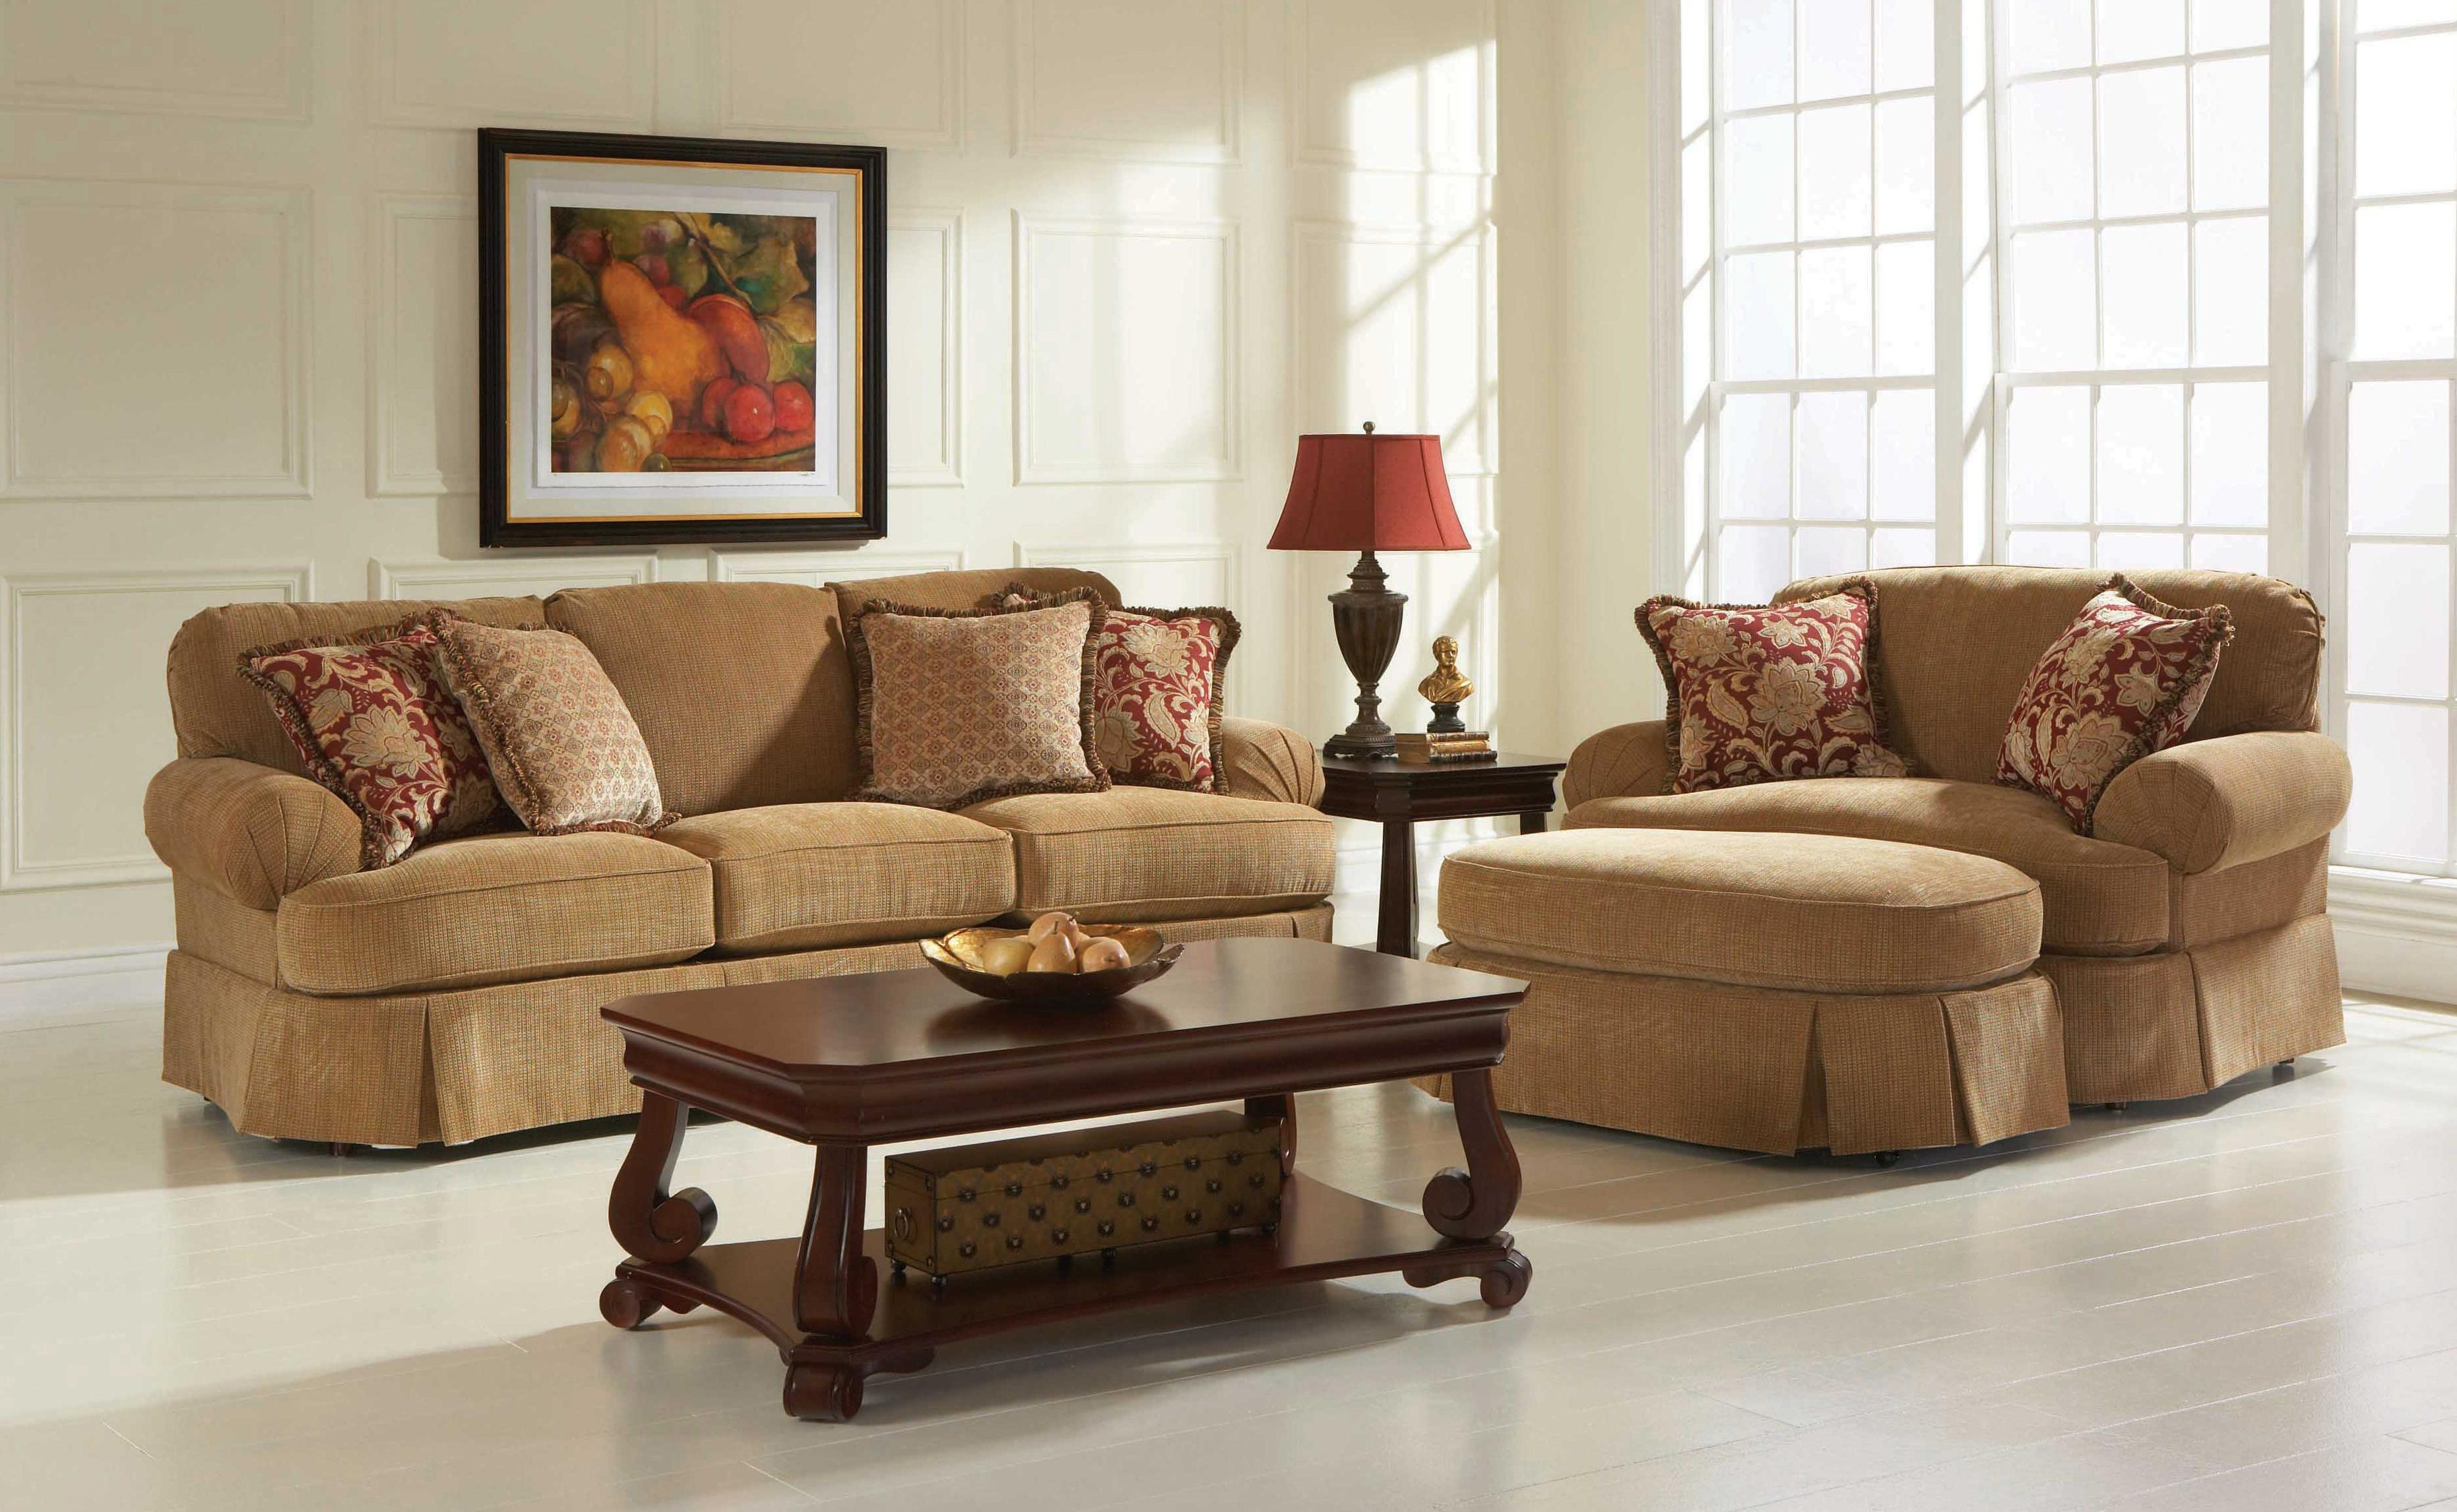 Broyhill Furniture McKinney Stationary Living Room Group - Item Number: 6544 Living Room Group 2